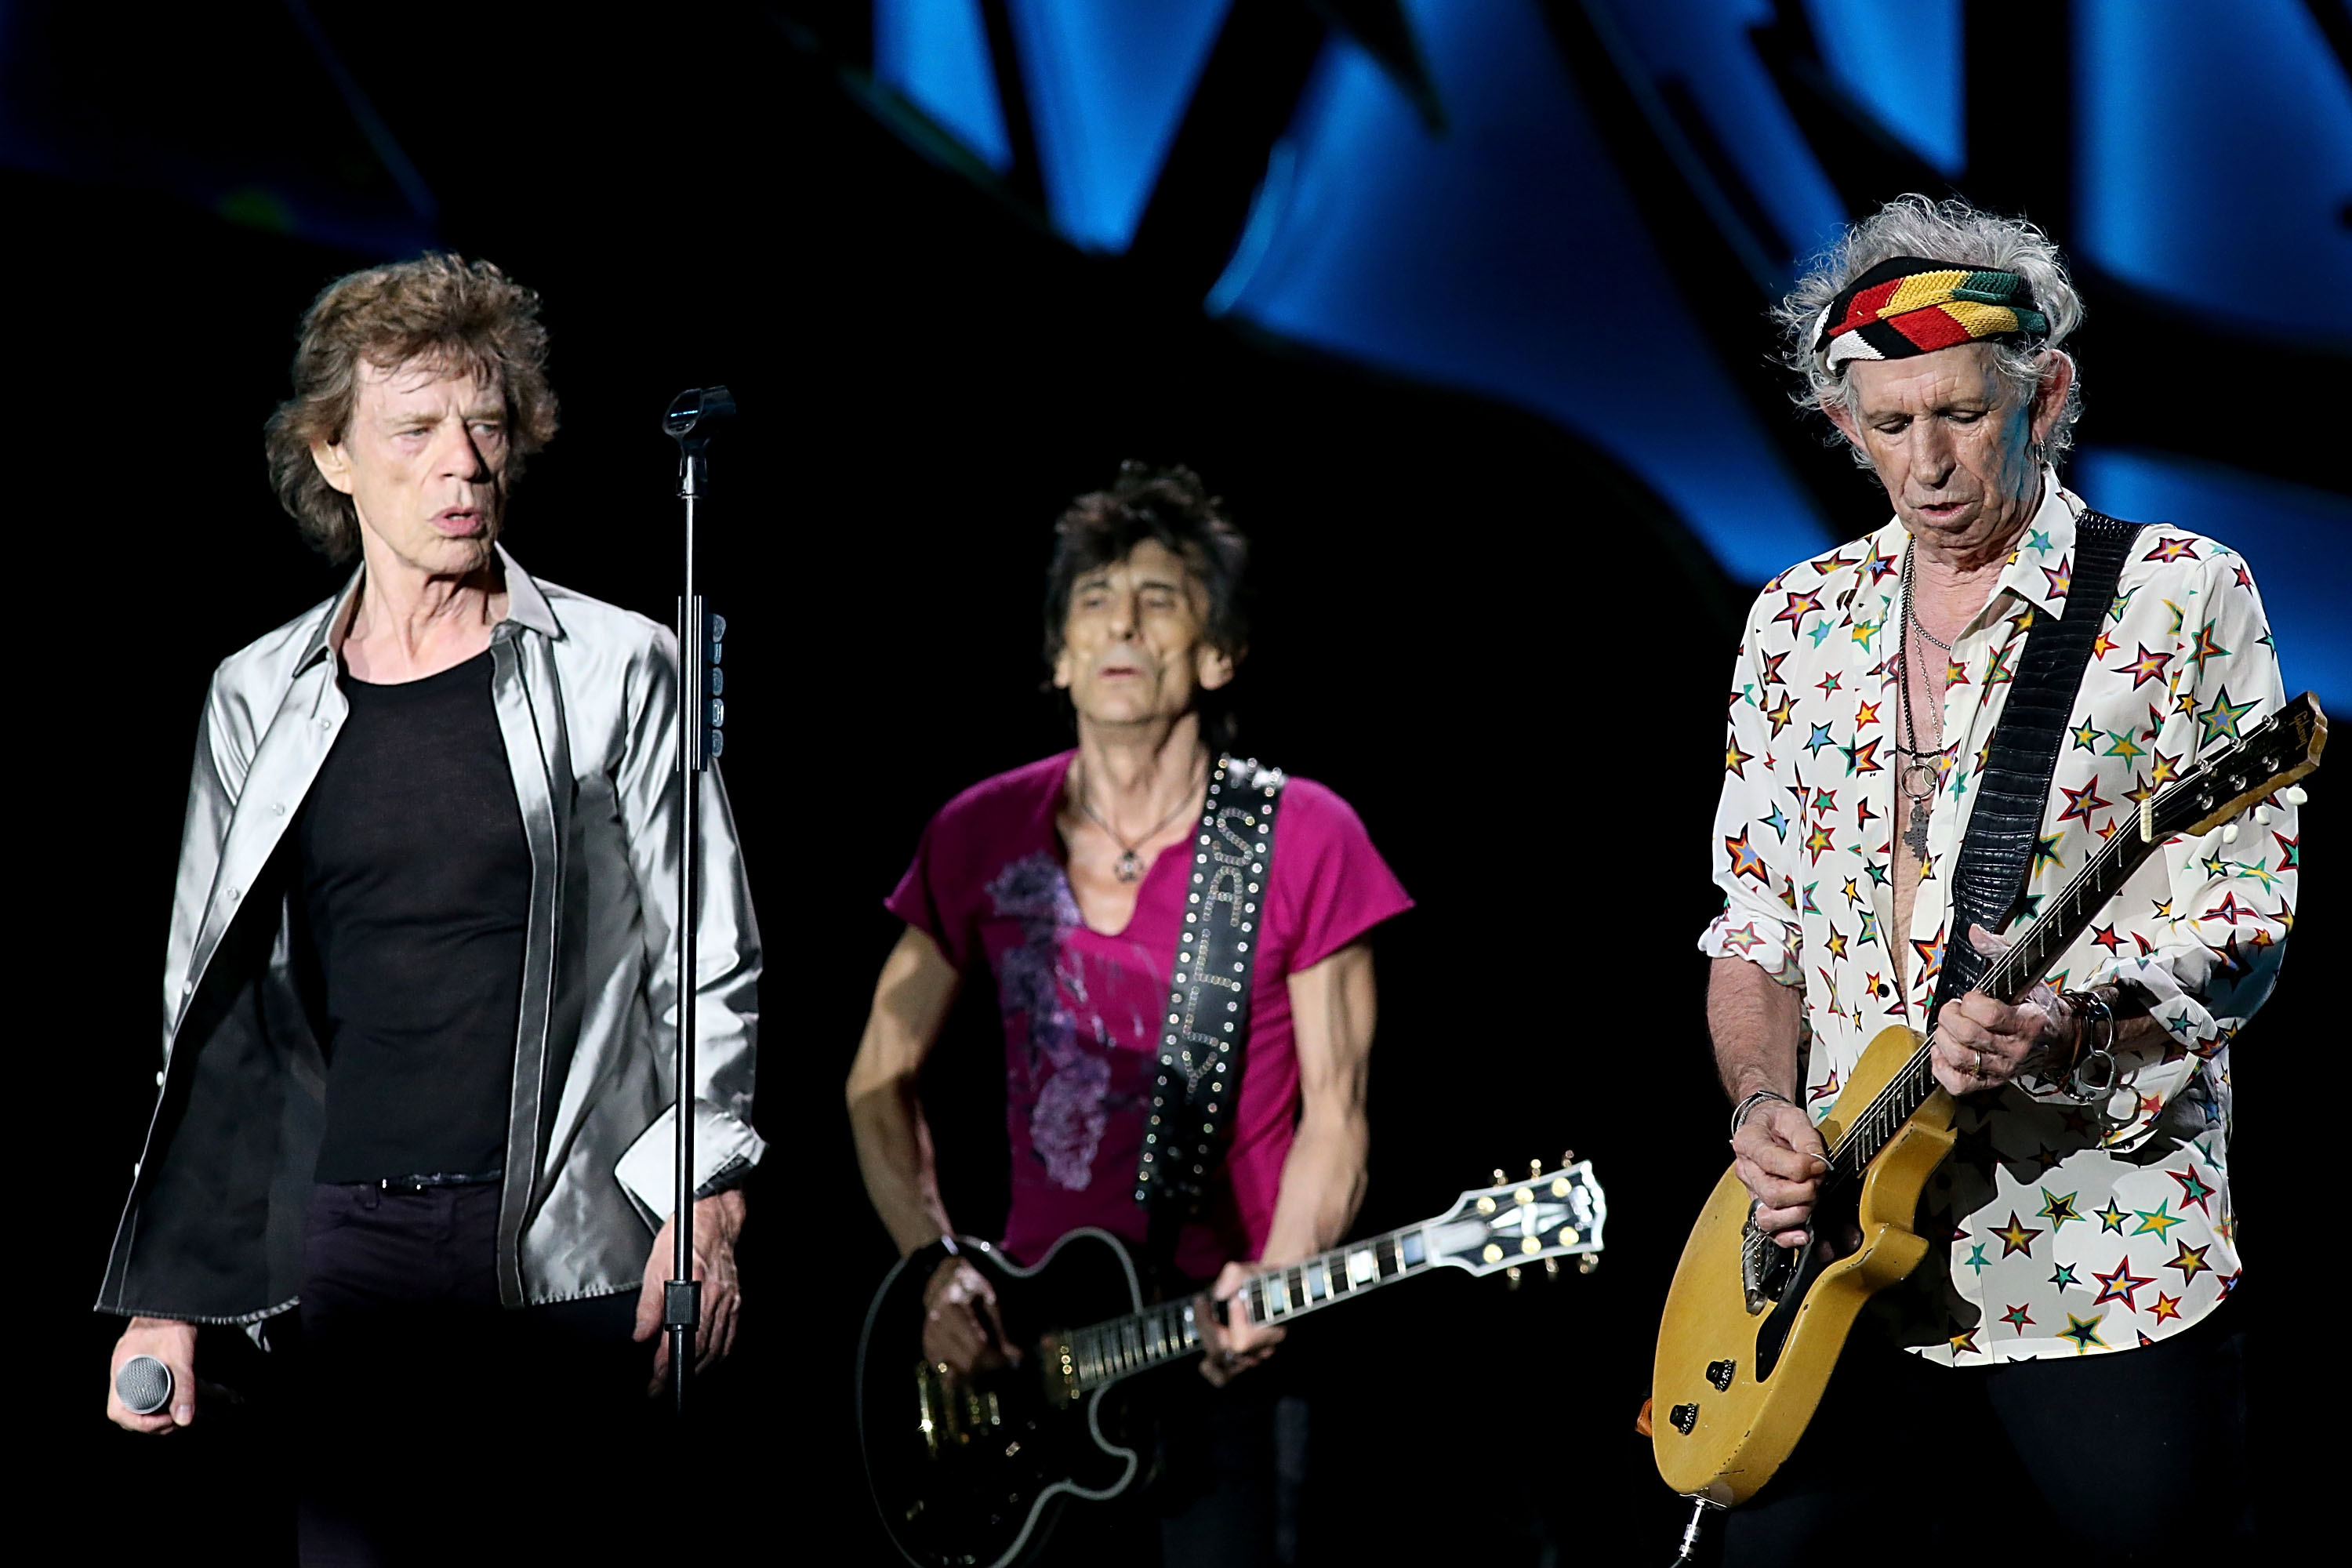 (L - R) Mick Jagger, Ron Wood and Keith Richards perform with the Rolling Stones at Ciudad Deportiva on March 25, 2016 in Havana, Cuba